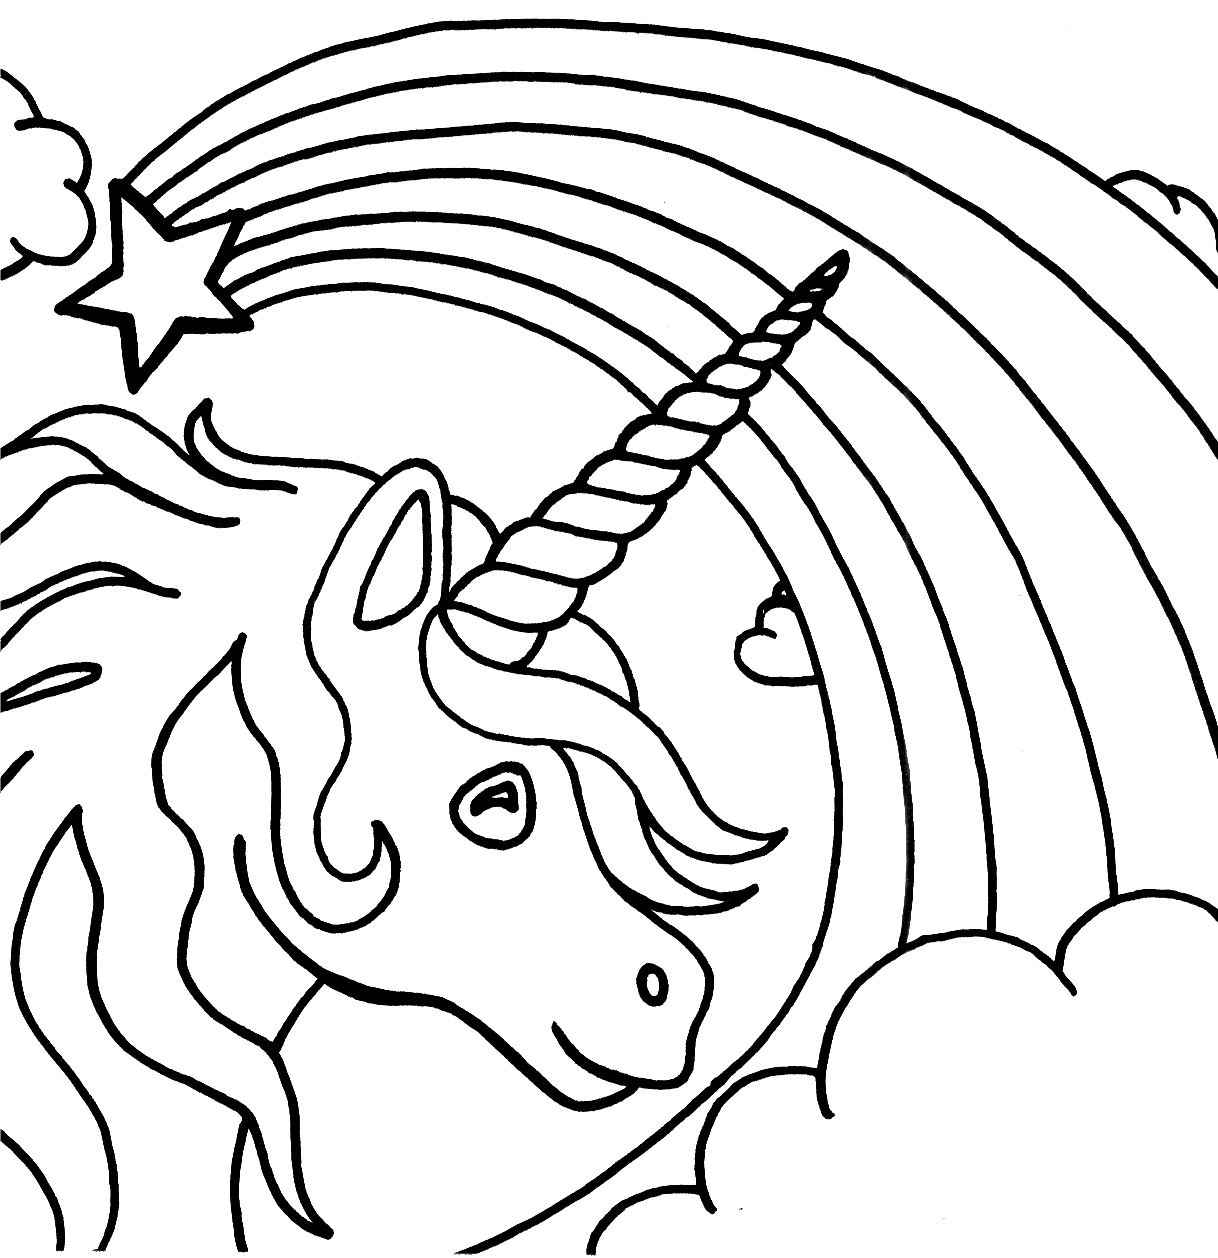 Free Printable Unicorn Coloring Pages - Free Printable Unicorn Coloring Pages for Kids